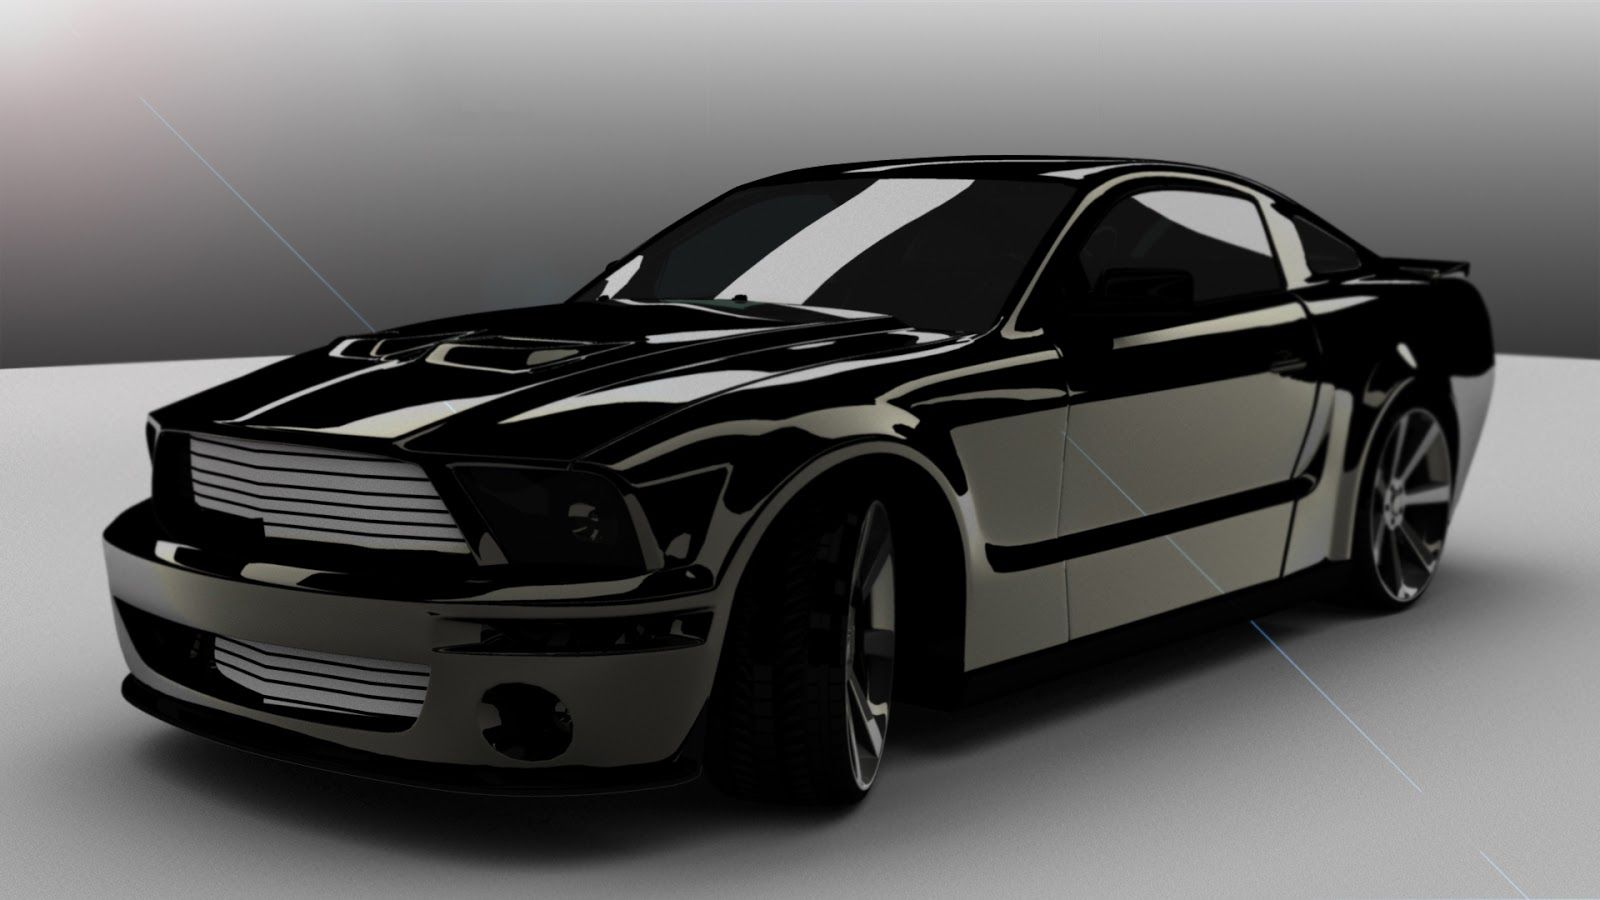 Best Muscle Car Wallpapers - Top Free Best Muscle Car ...